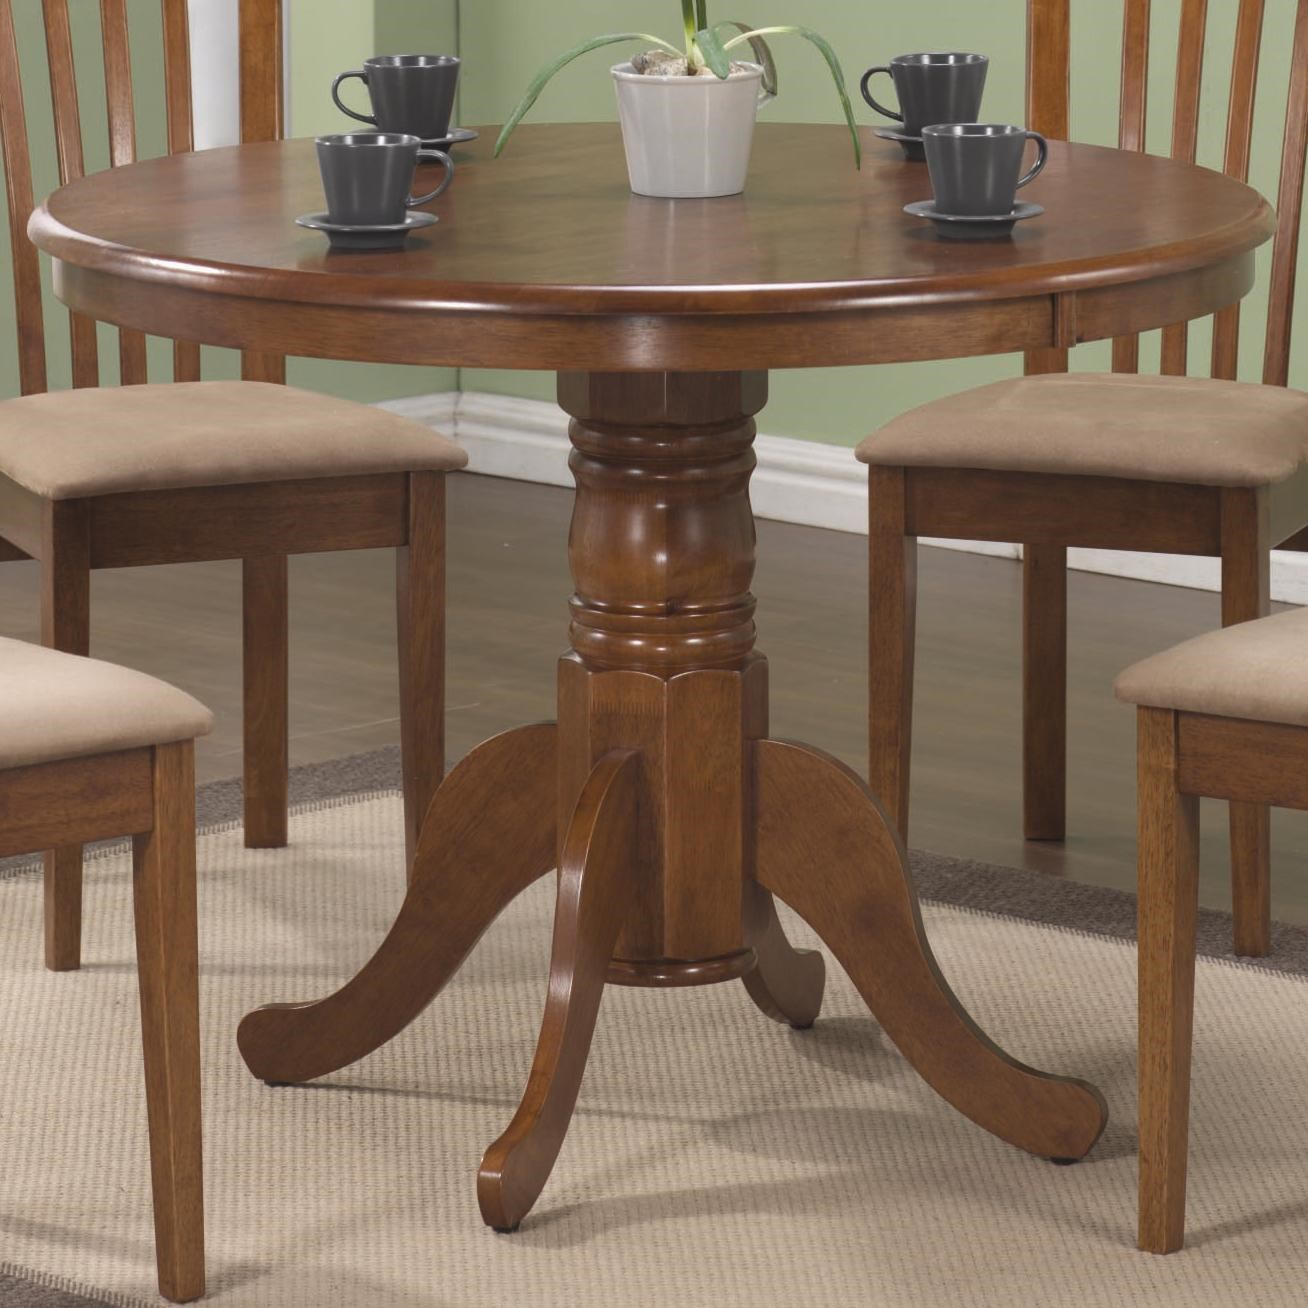 Breakfast Room Tables Brannan Round Single Pedestal Dining Table By Coaster At Dunk Bright Furniture